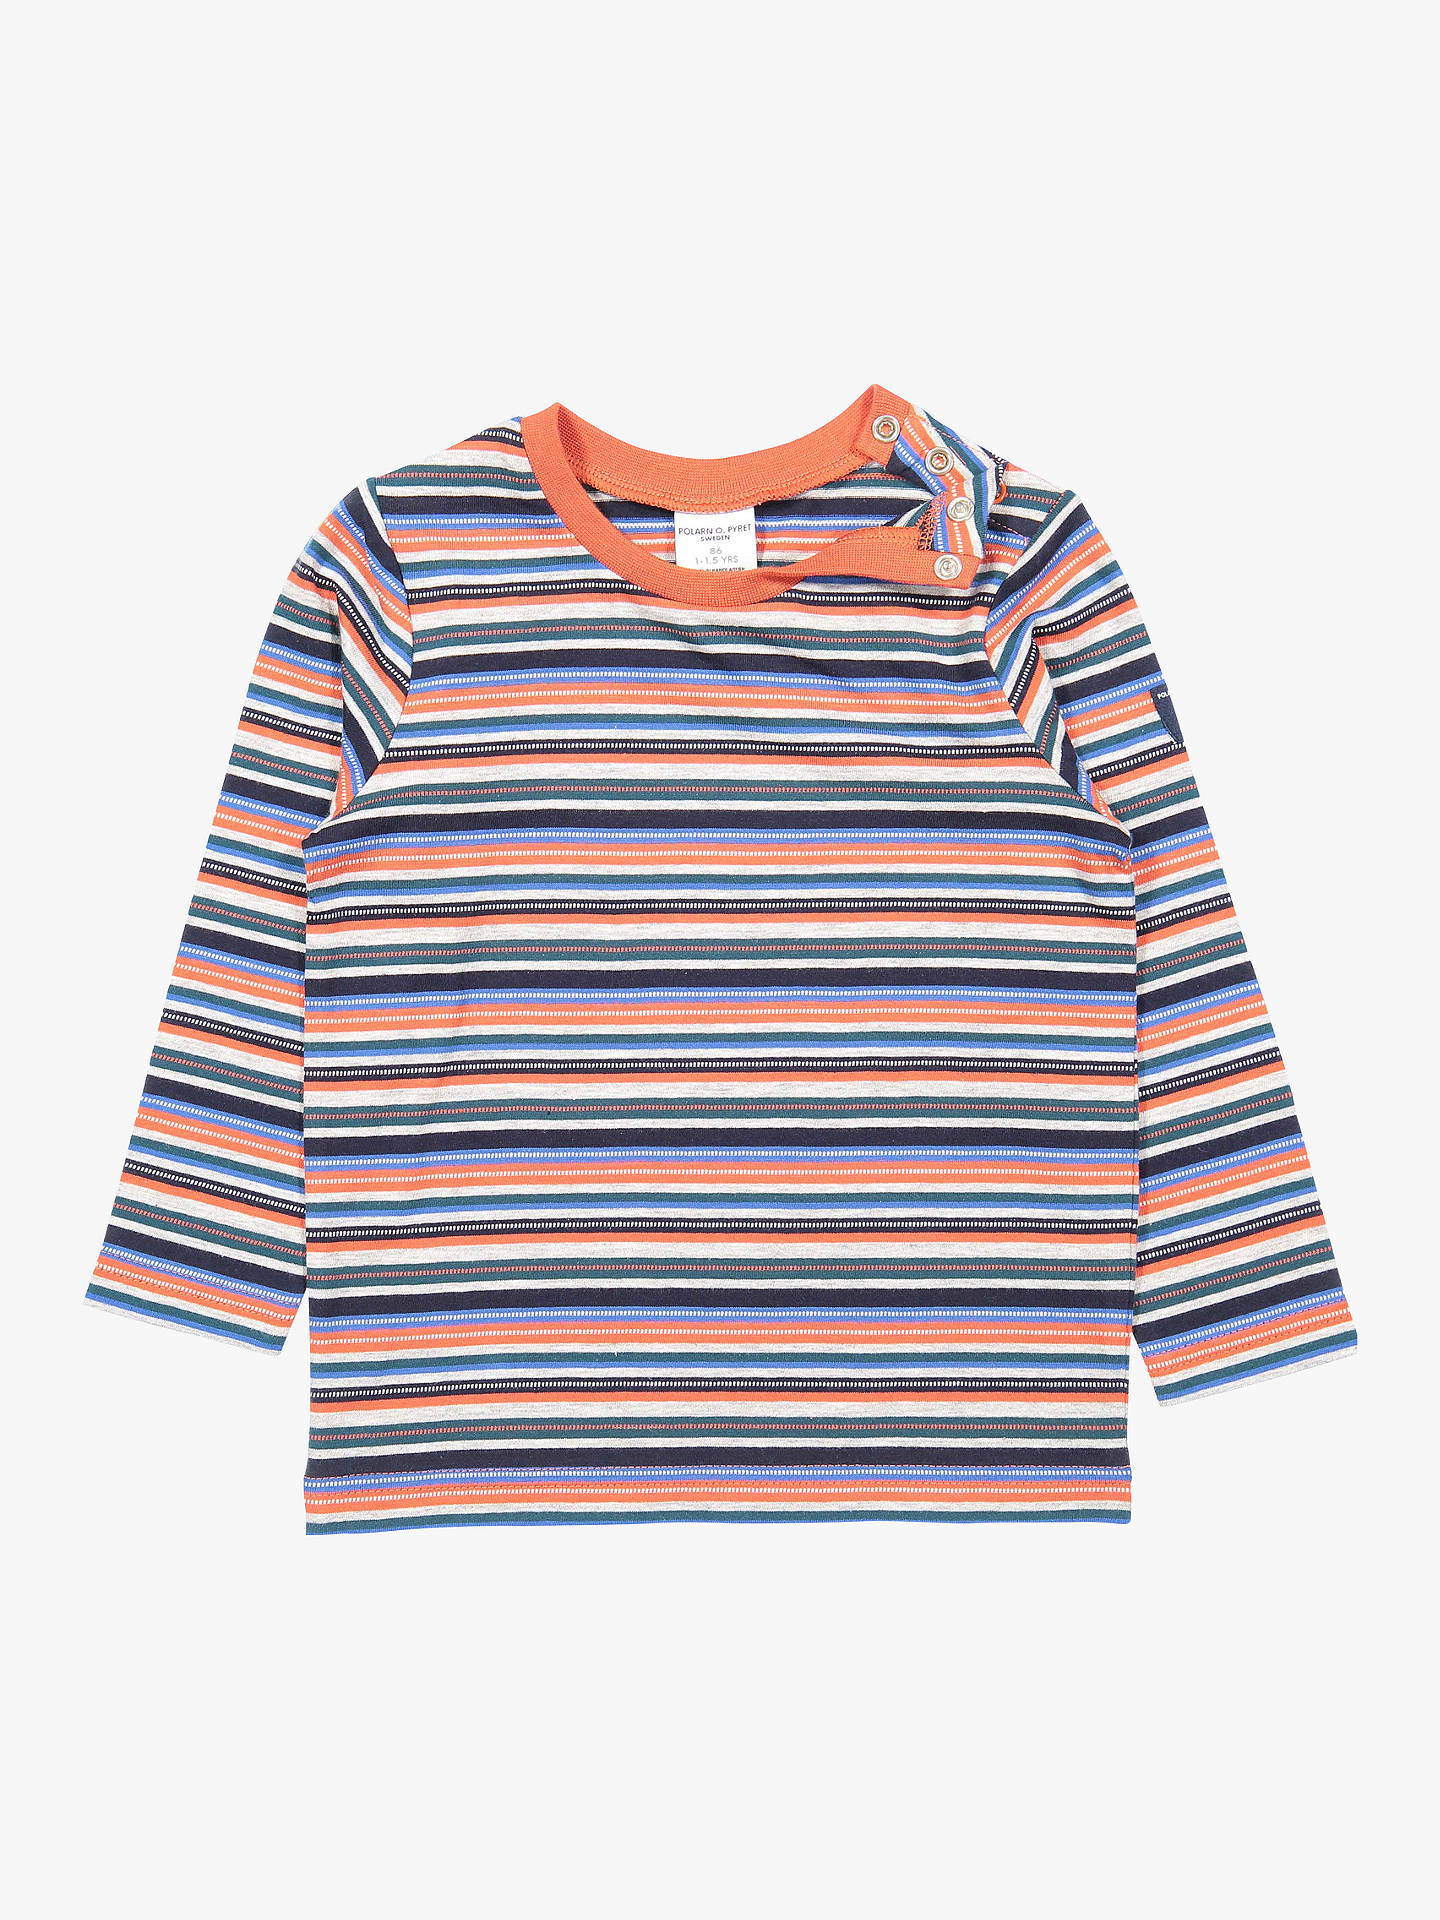 Buy Polarn O. Pyret Baby GOTS Organic Cotton Stripe Long Sleeve Top, Orange, 18-24 months Online at johnlewis.com